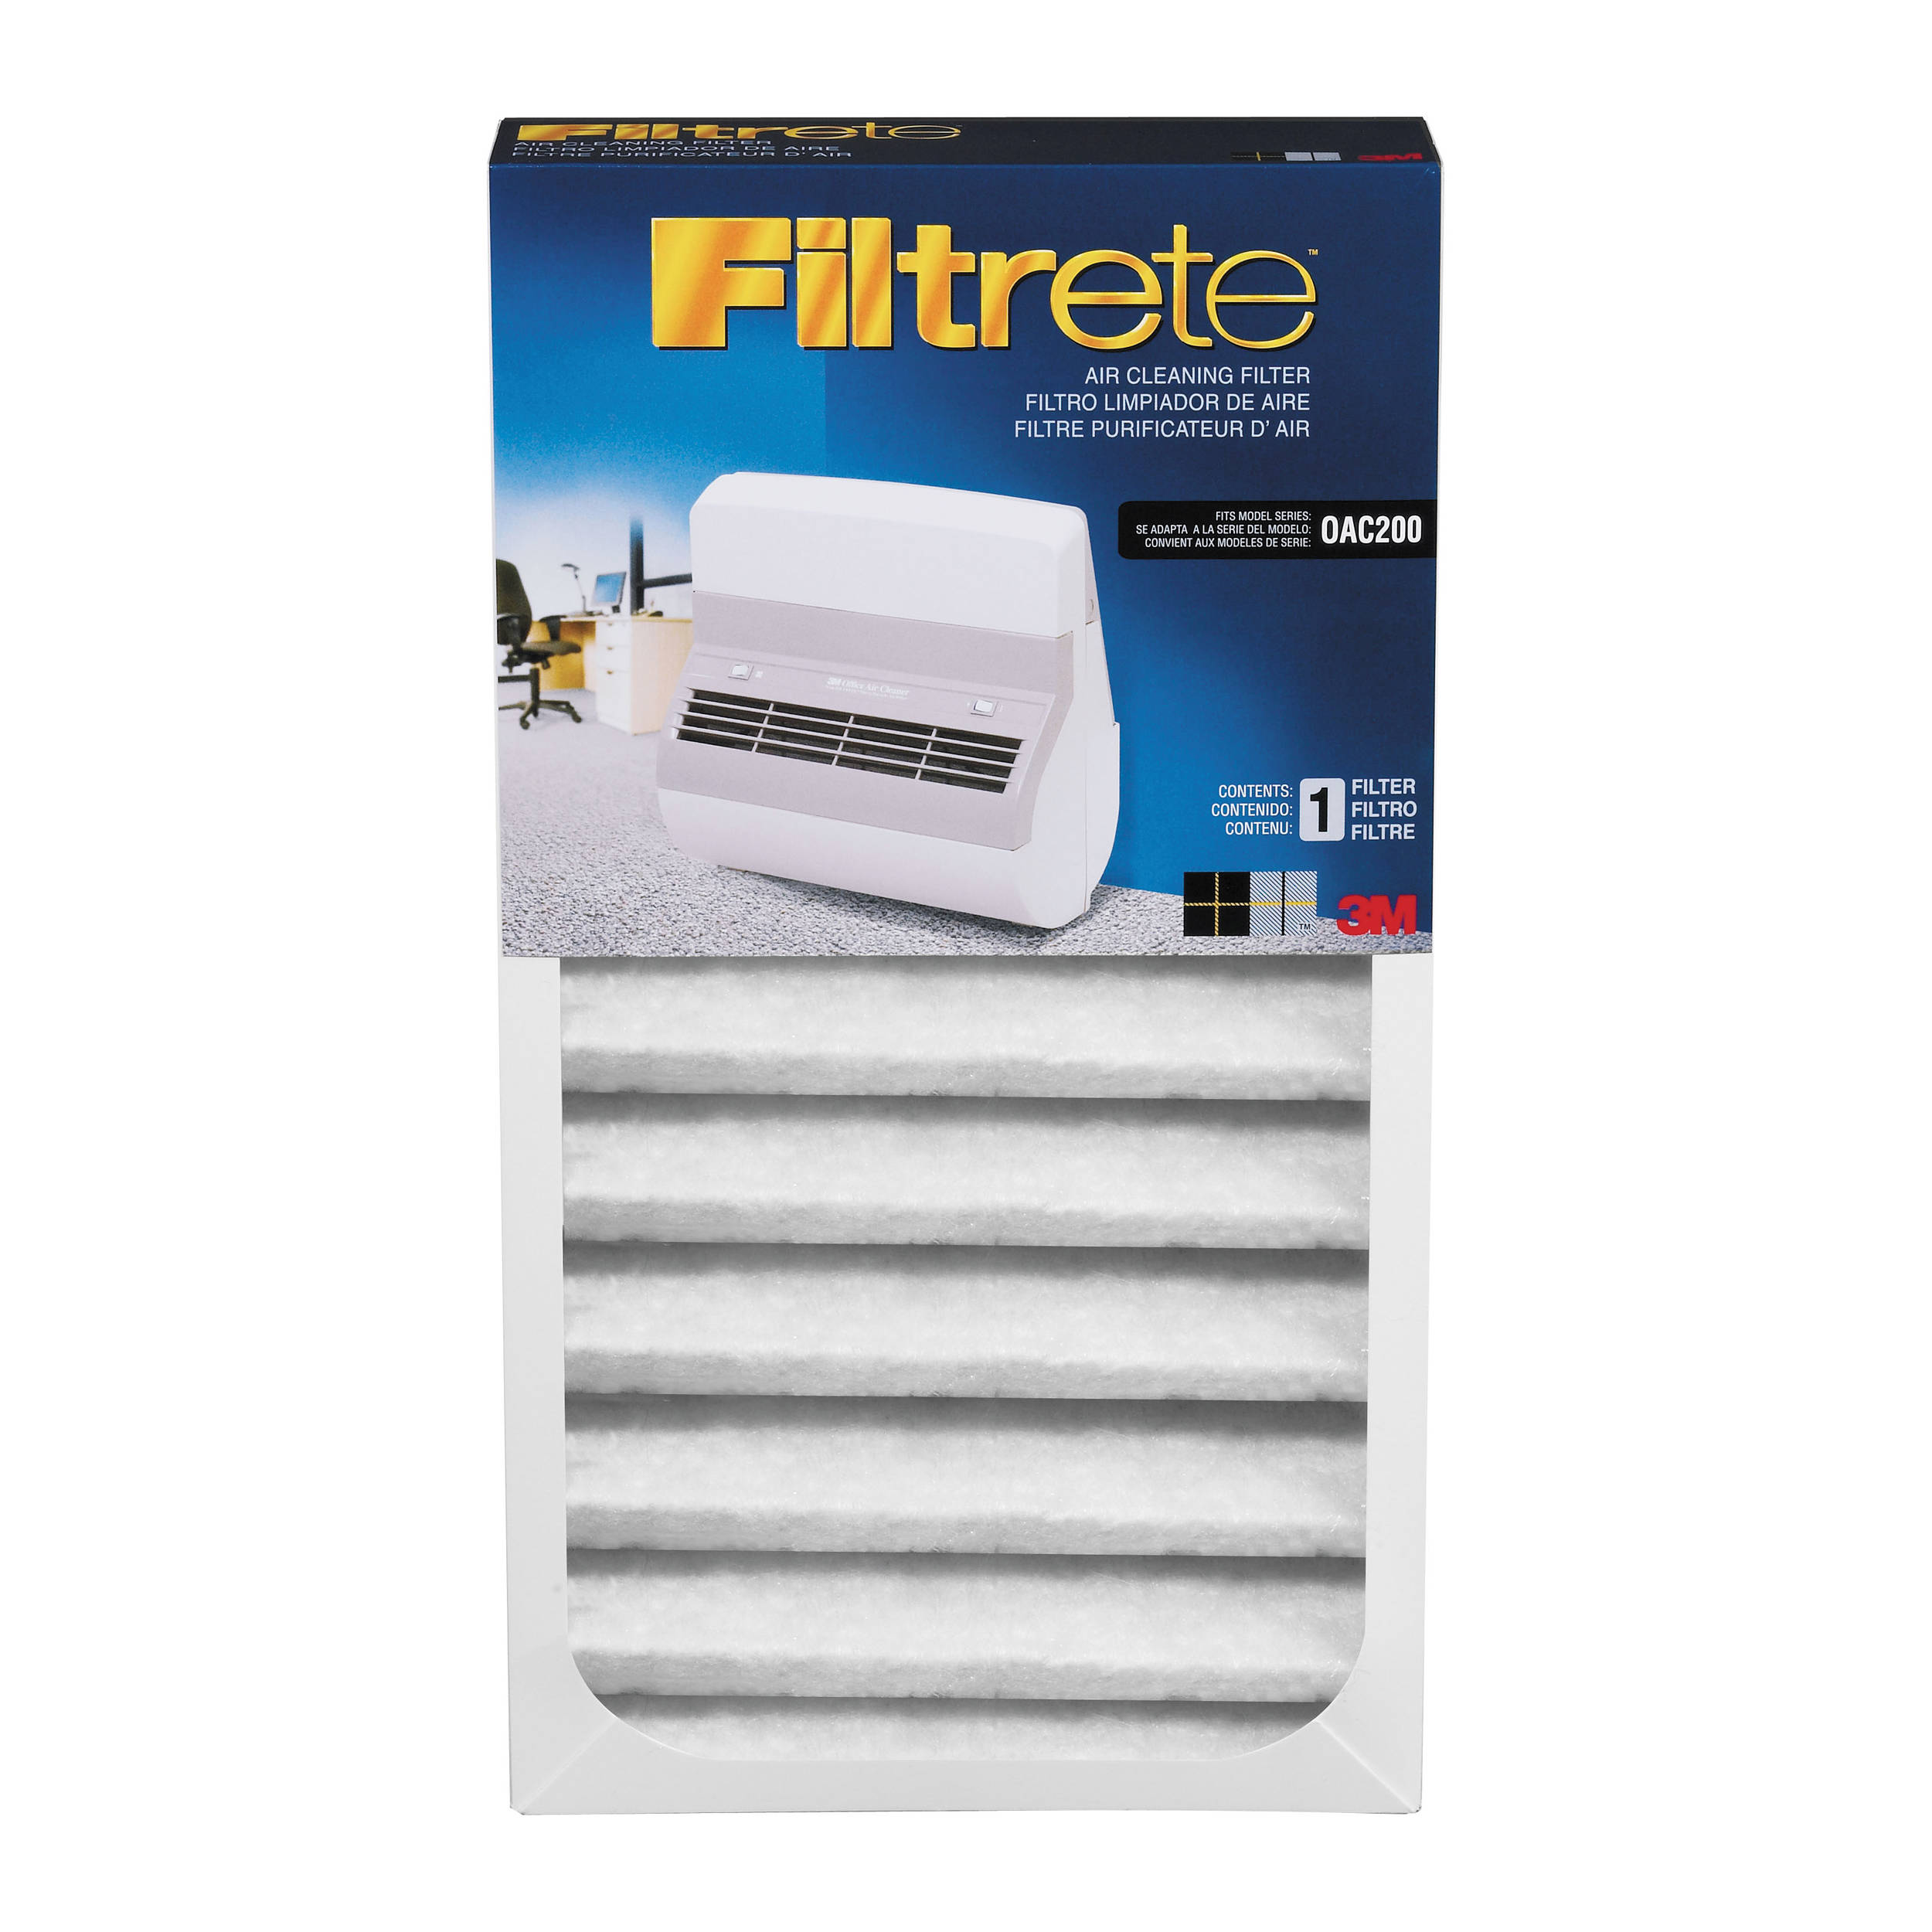 3m Filtrete Replacement Filter For Oac200 Office Air Cleaner